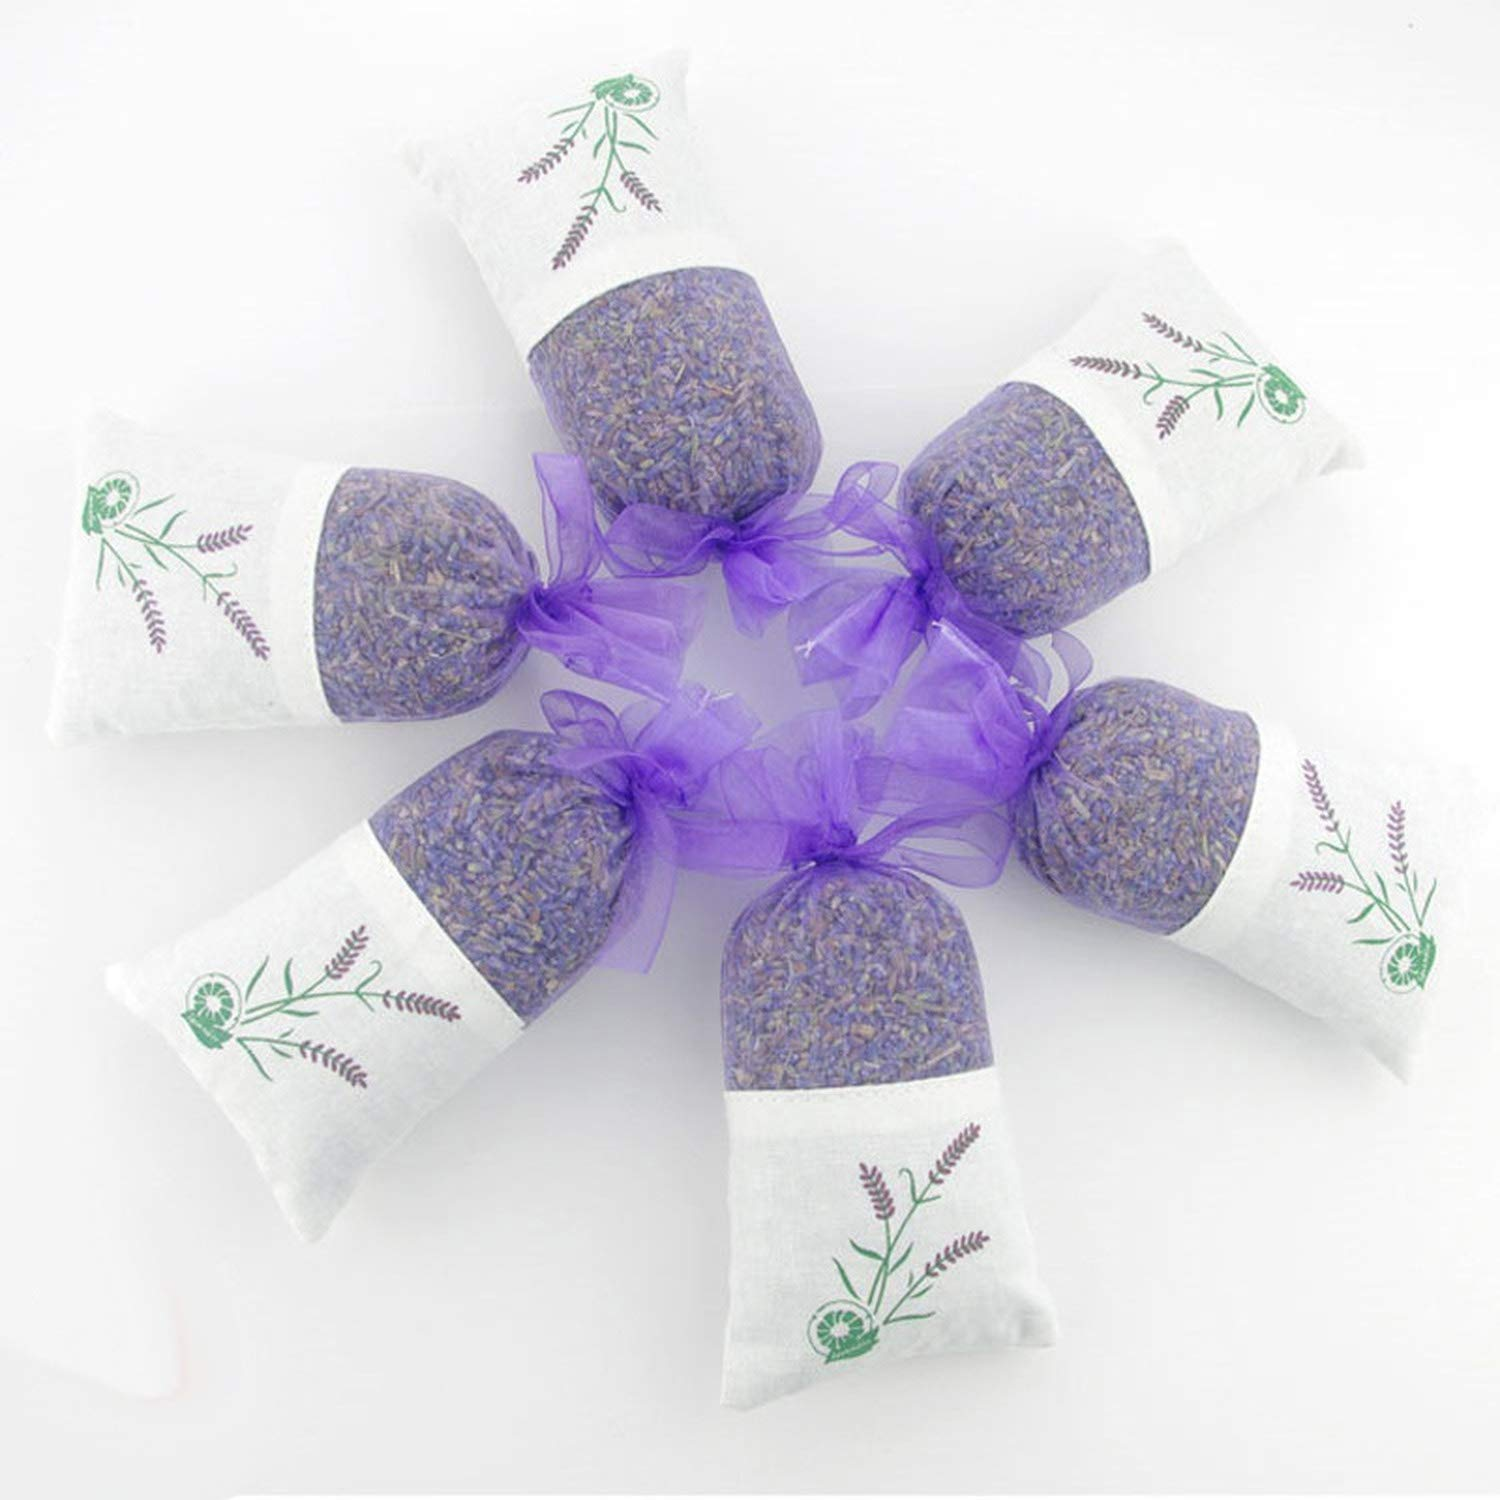 yuexianghui Natural Dried Flowers Lavender Bud Sachet Decorative Flower Aromatic Air Fresh Living Room Drawer,6 Pcs by yuexianghui (Image #5)